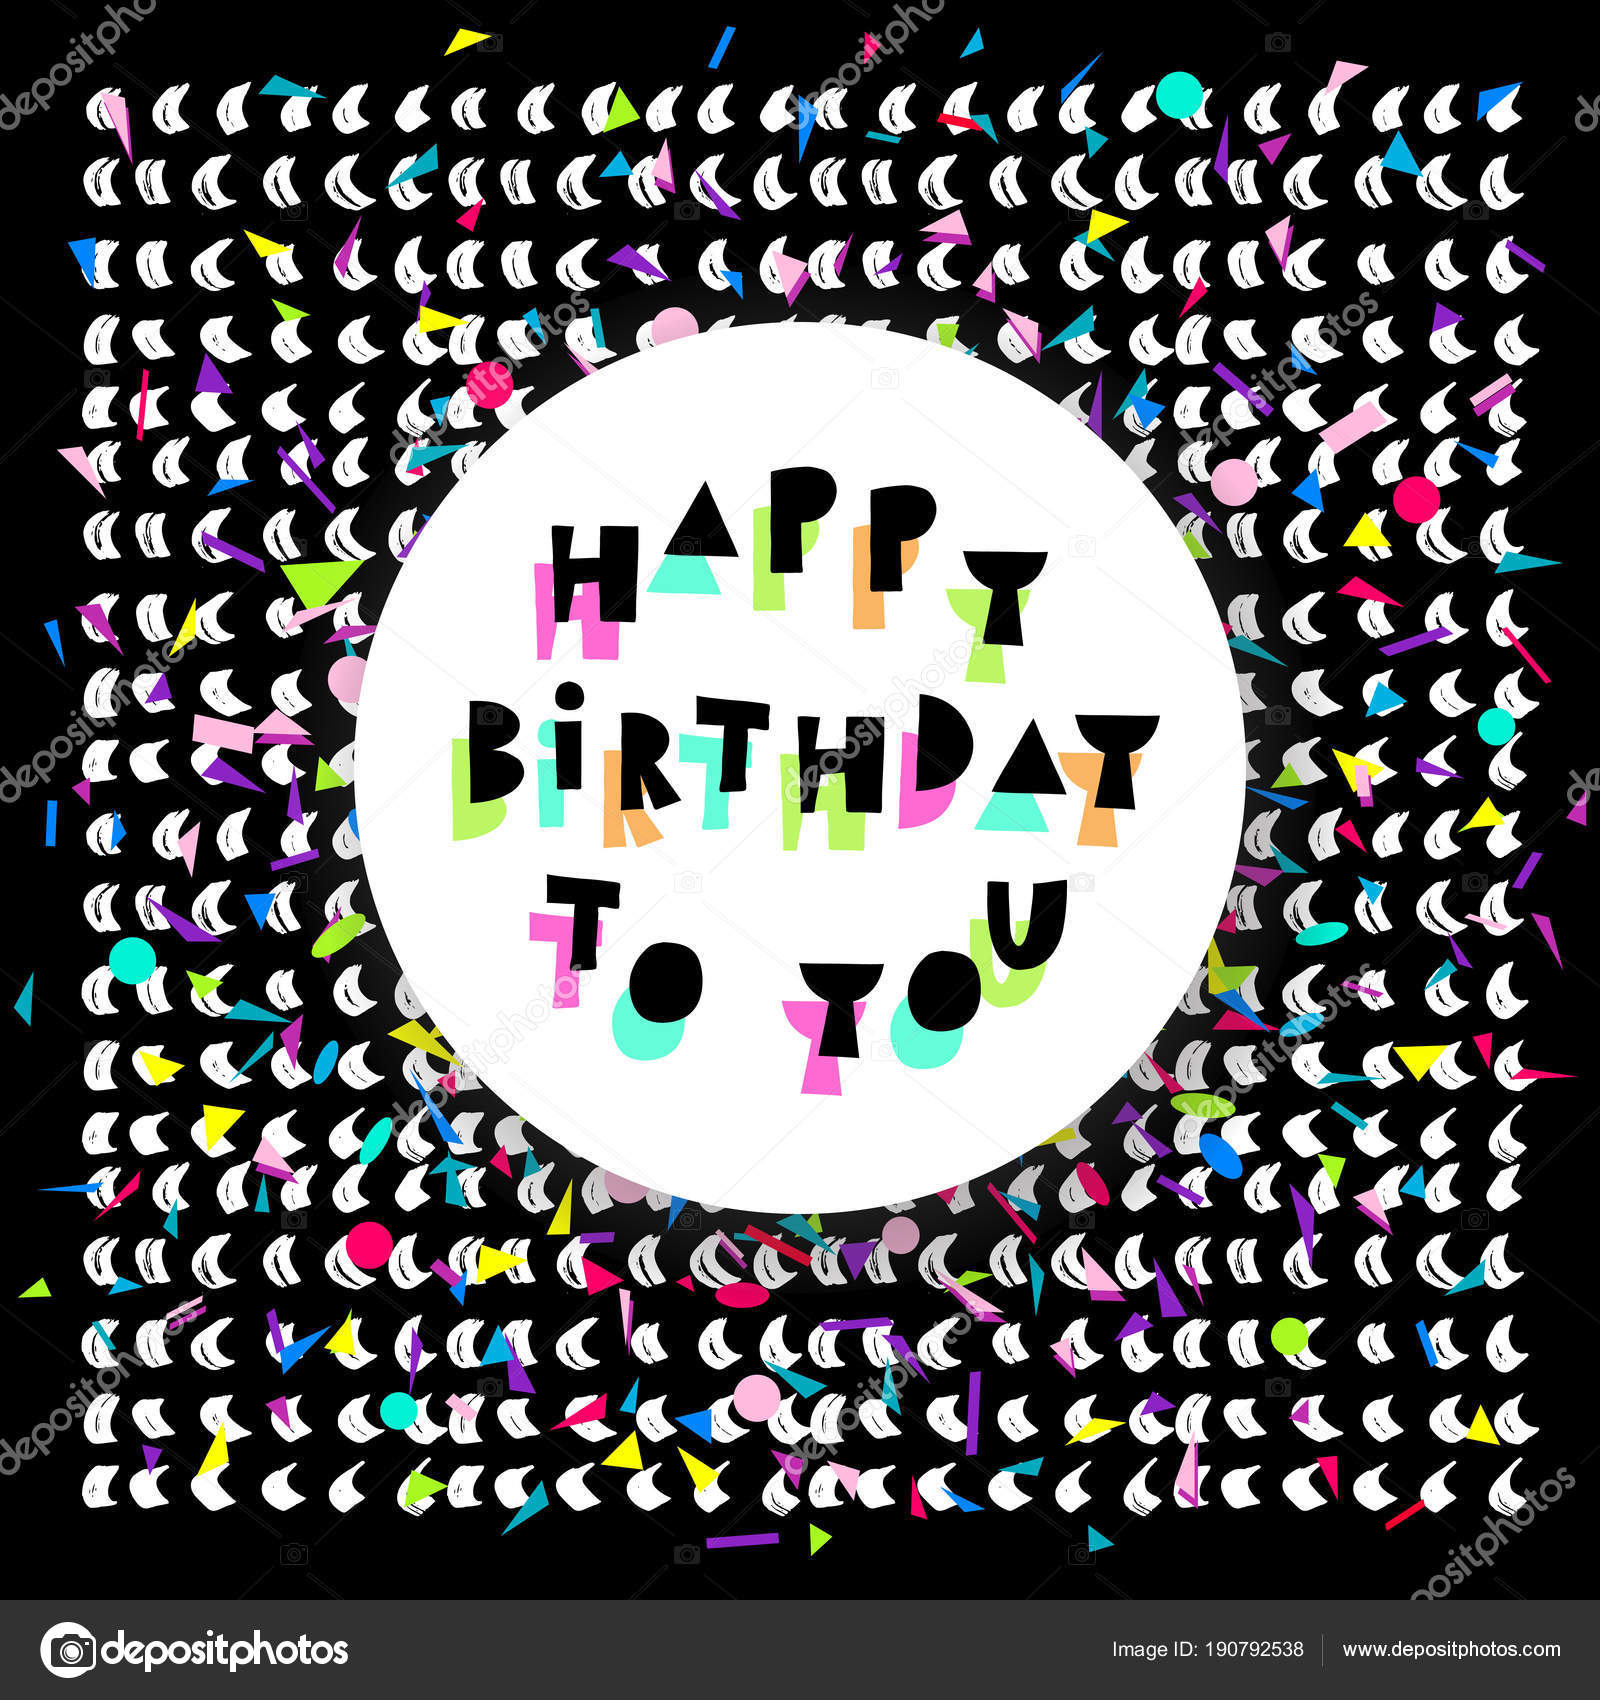 Happy Birthday card with colorful confetti and white circle on black background